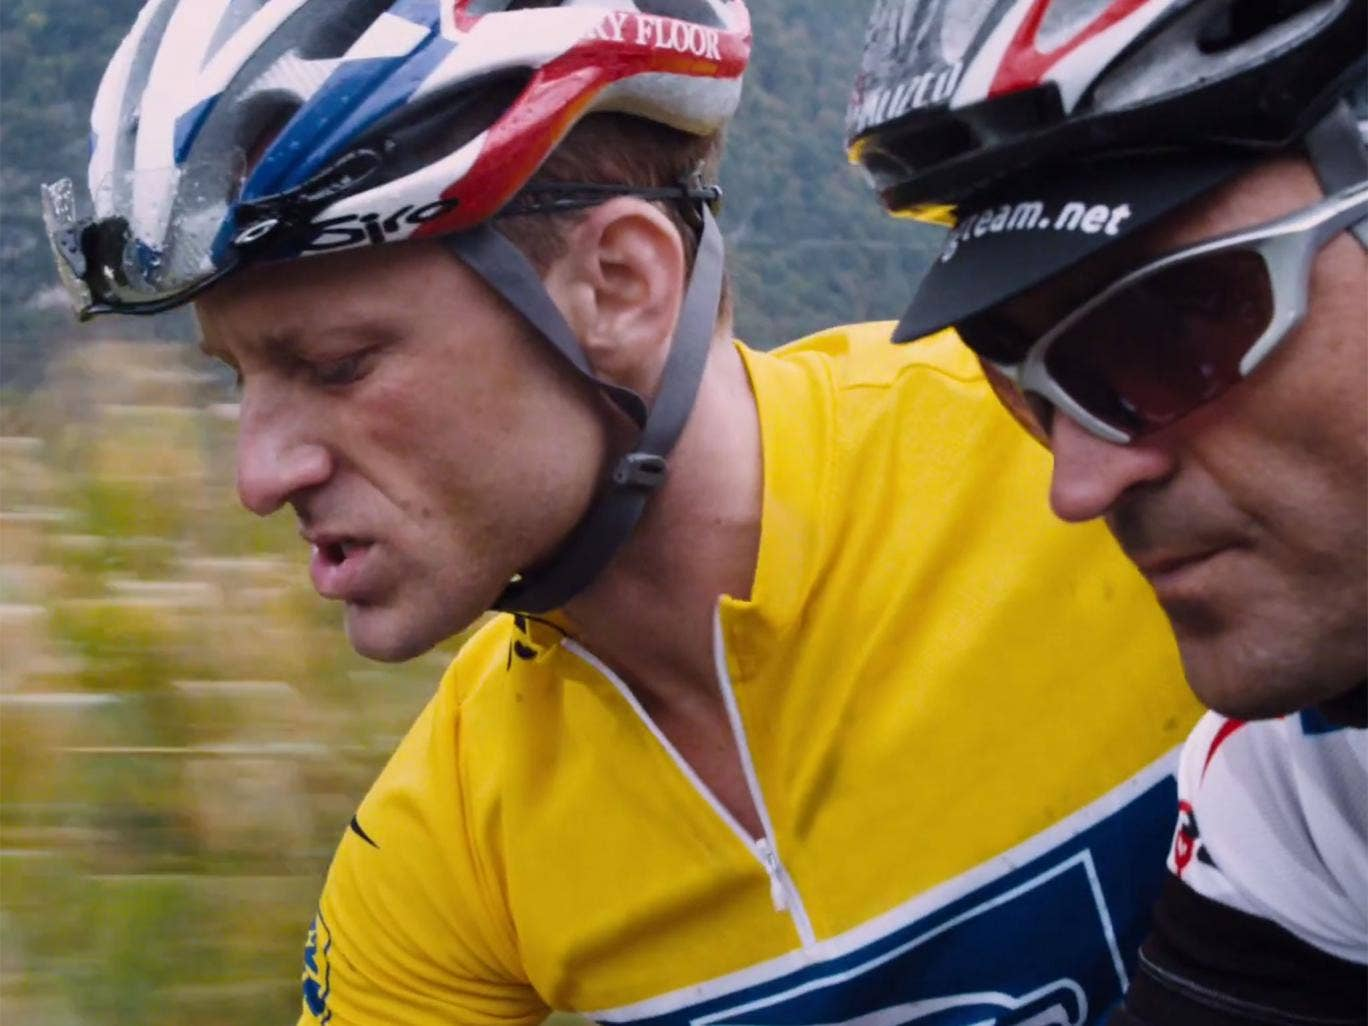 Ben Foster plays Lance Armstrong in Stephen Frears' The Program - lance-armstrong